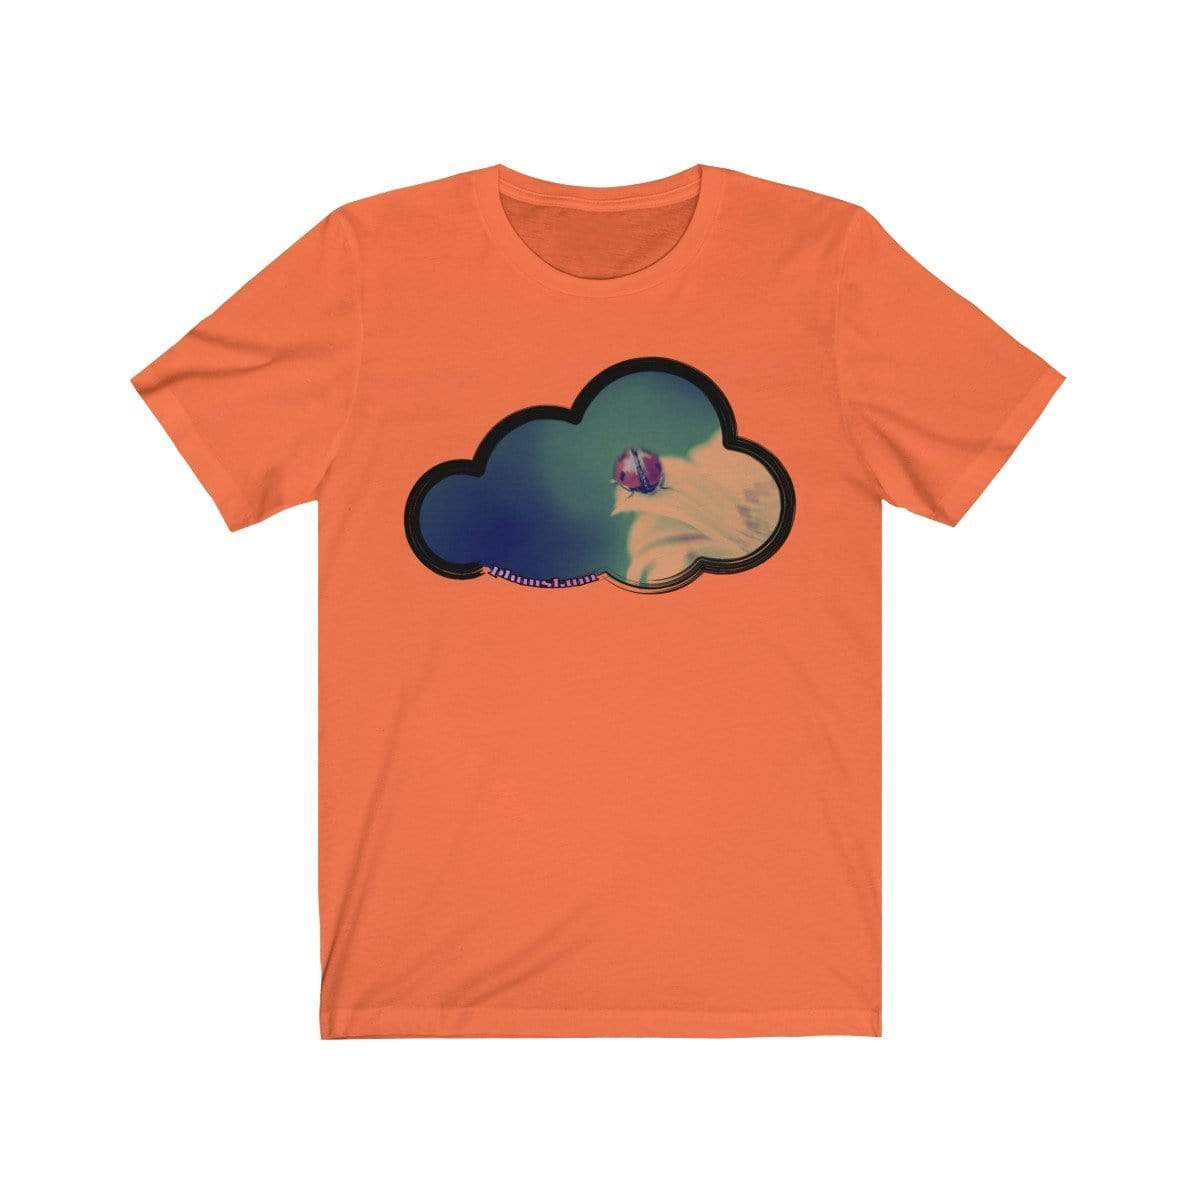 Printify T-Shirt Orange / M Ladybug Art Clouds Tee